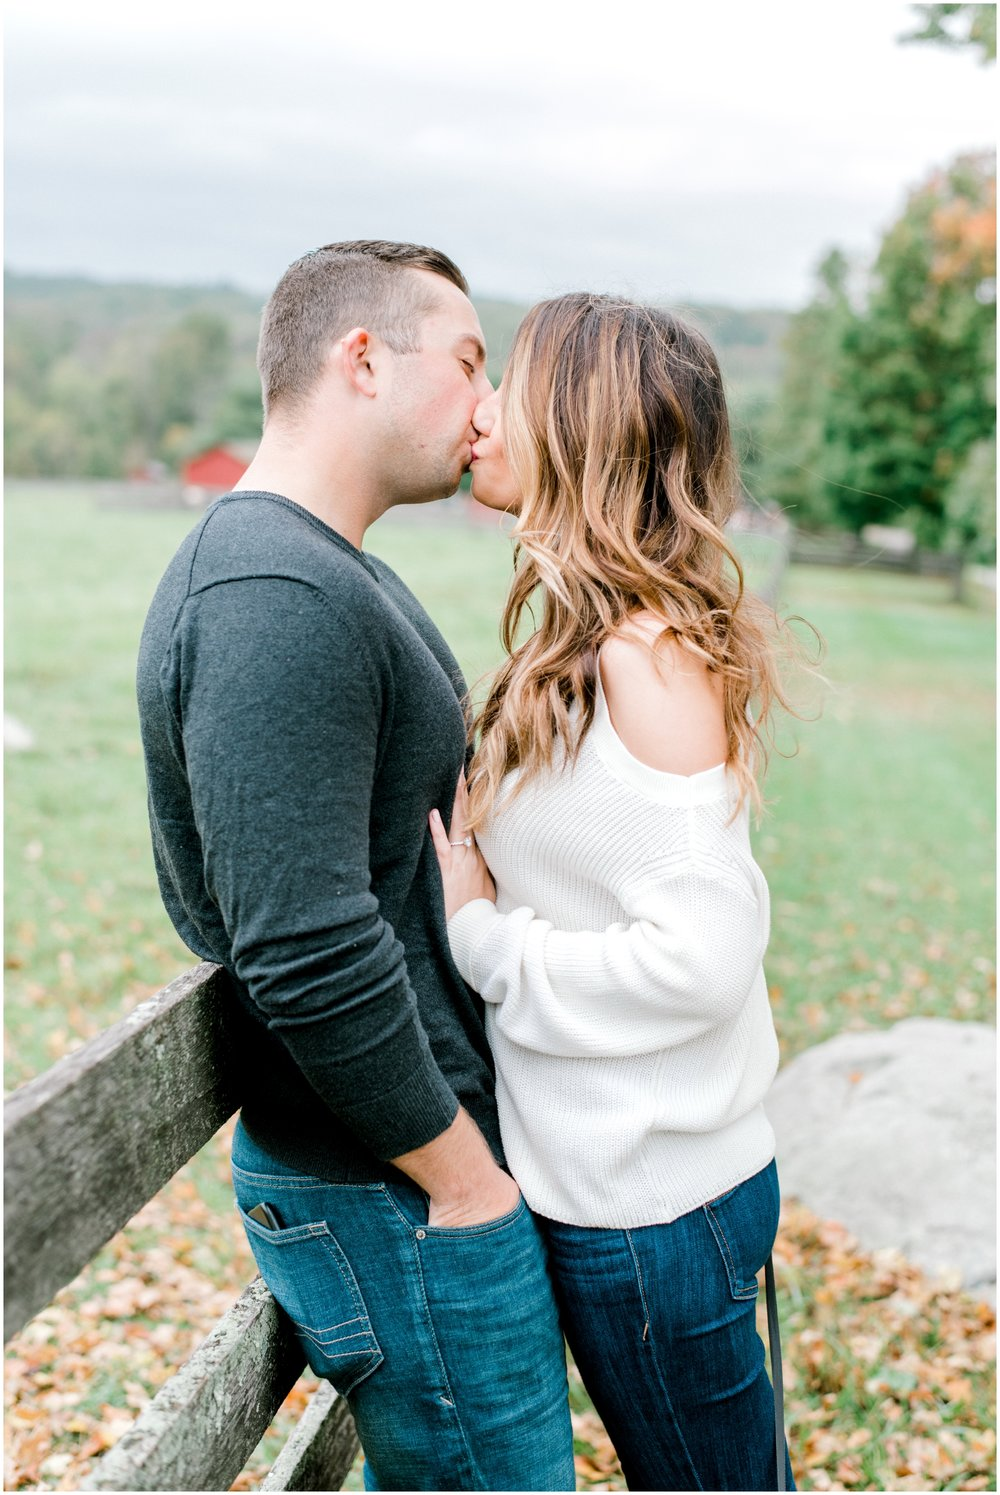 Fall Springton Manor Farm Engagement Session - Krista Brackin Photography_0019.jpg